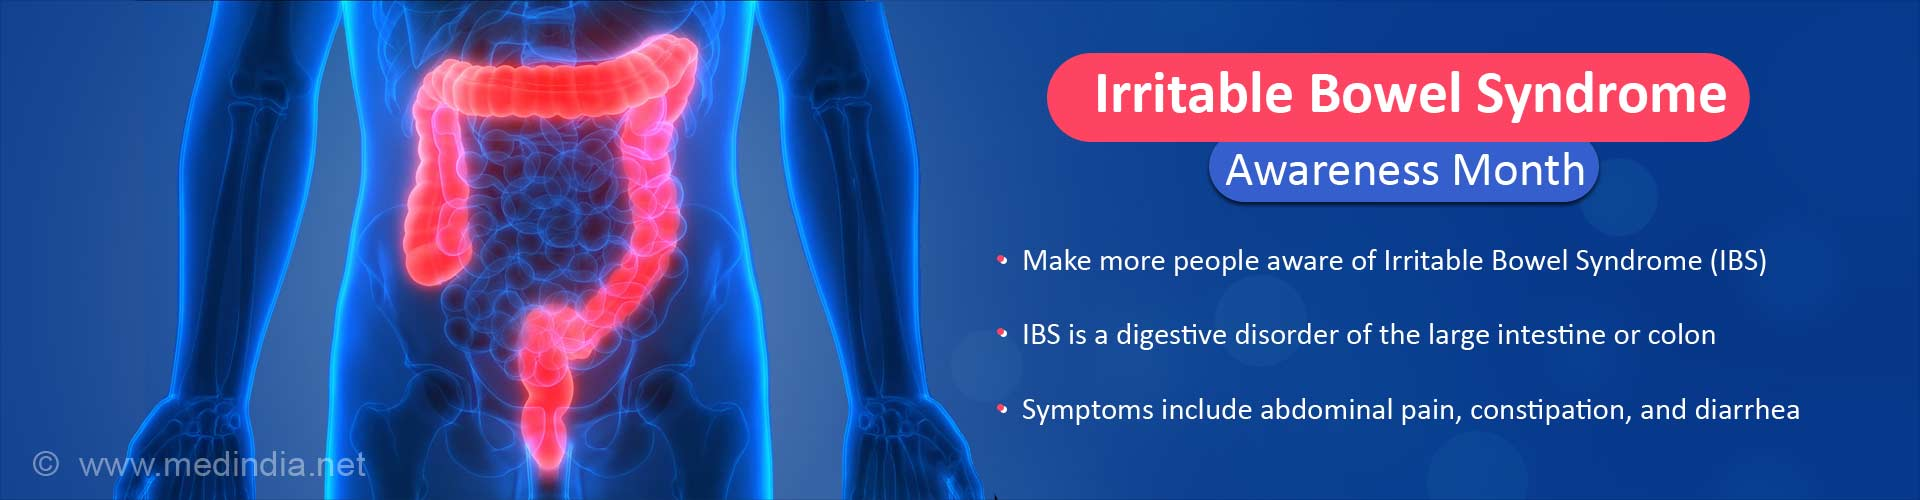 April is Irritable Bowel Syndrome Awareness Month